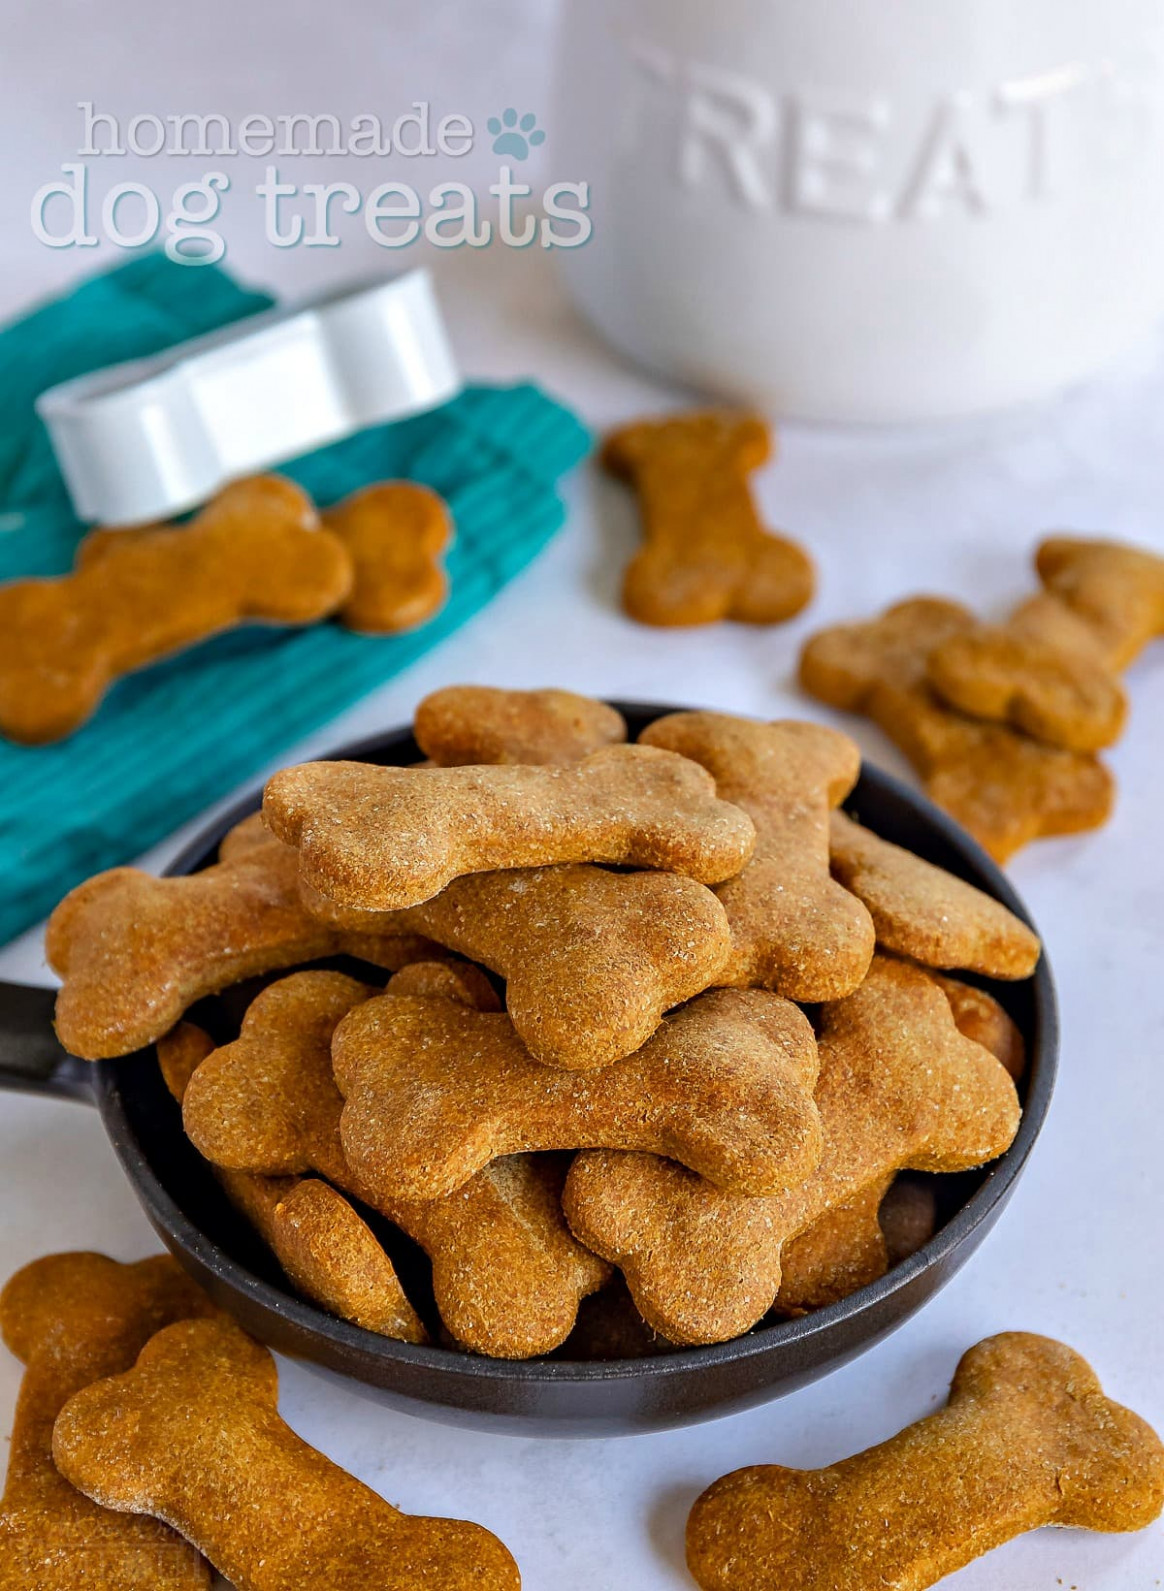 Homemade Dog Treats - recipes to make hypoallergenic dog food